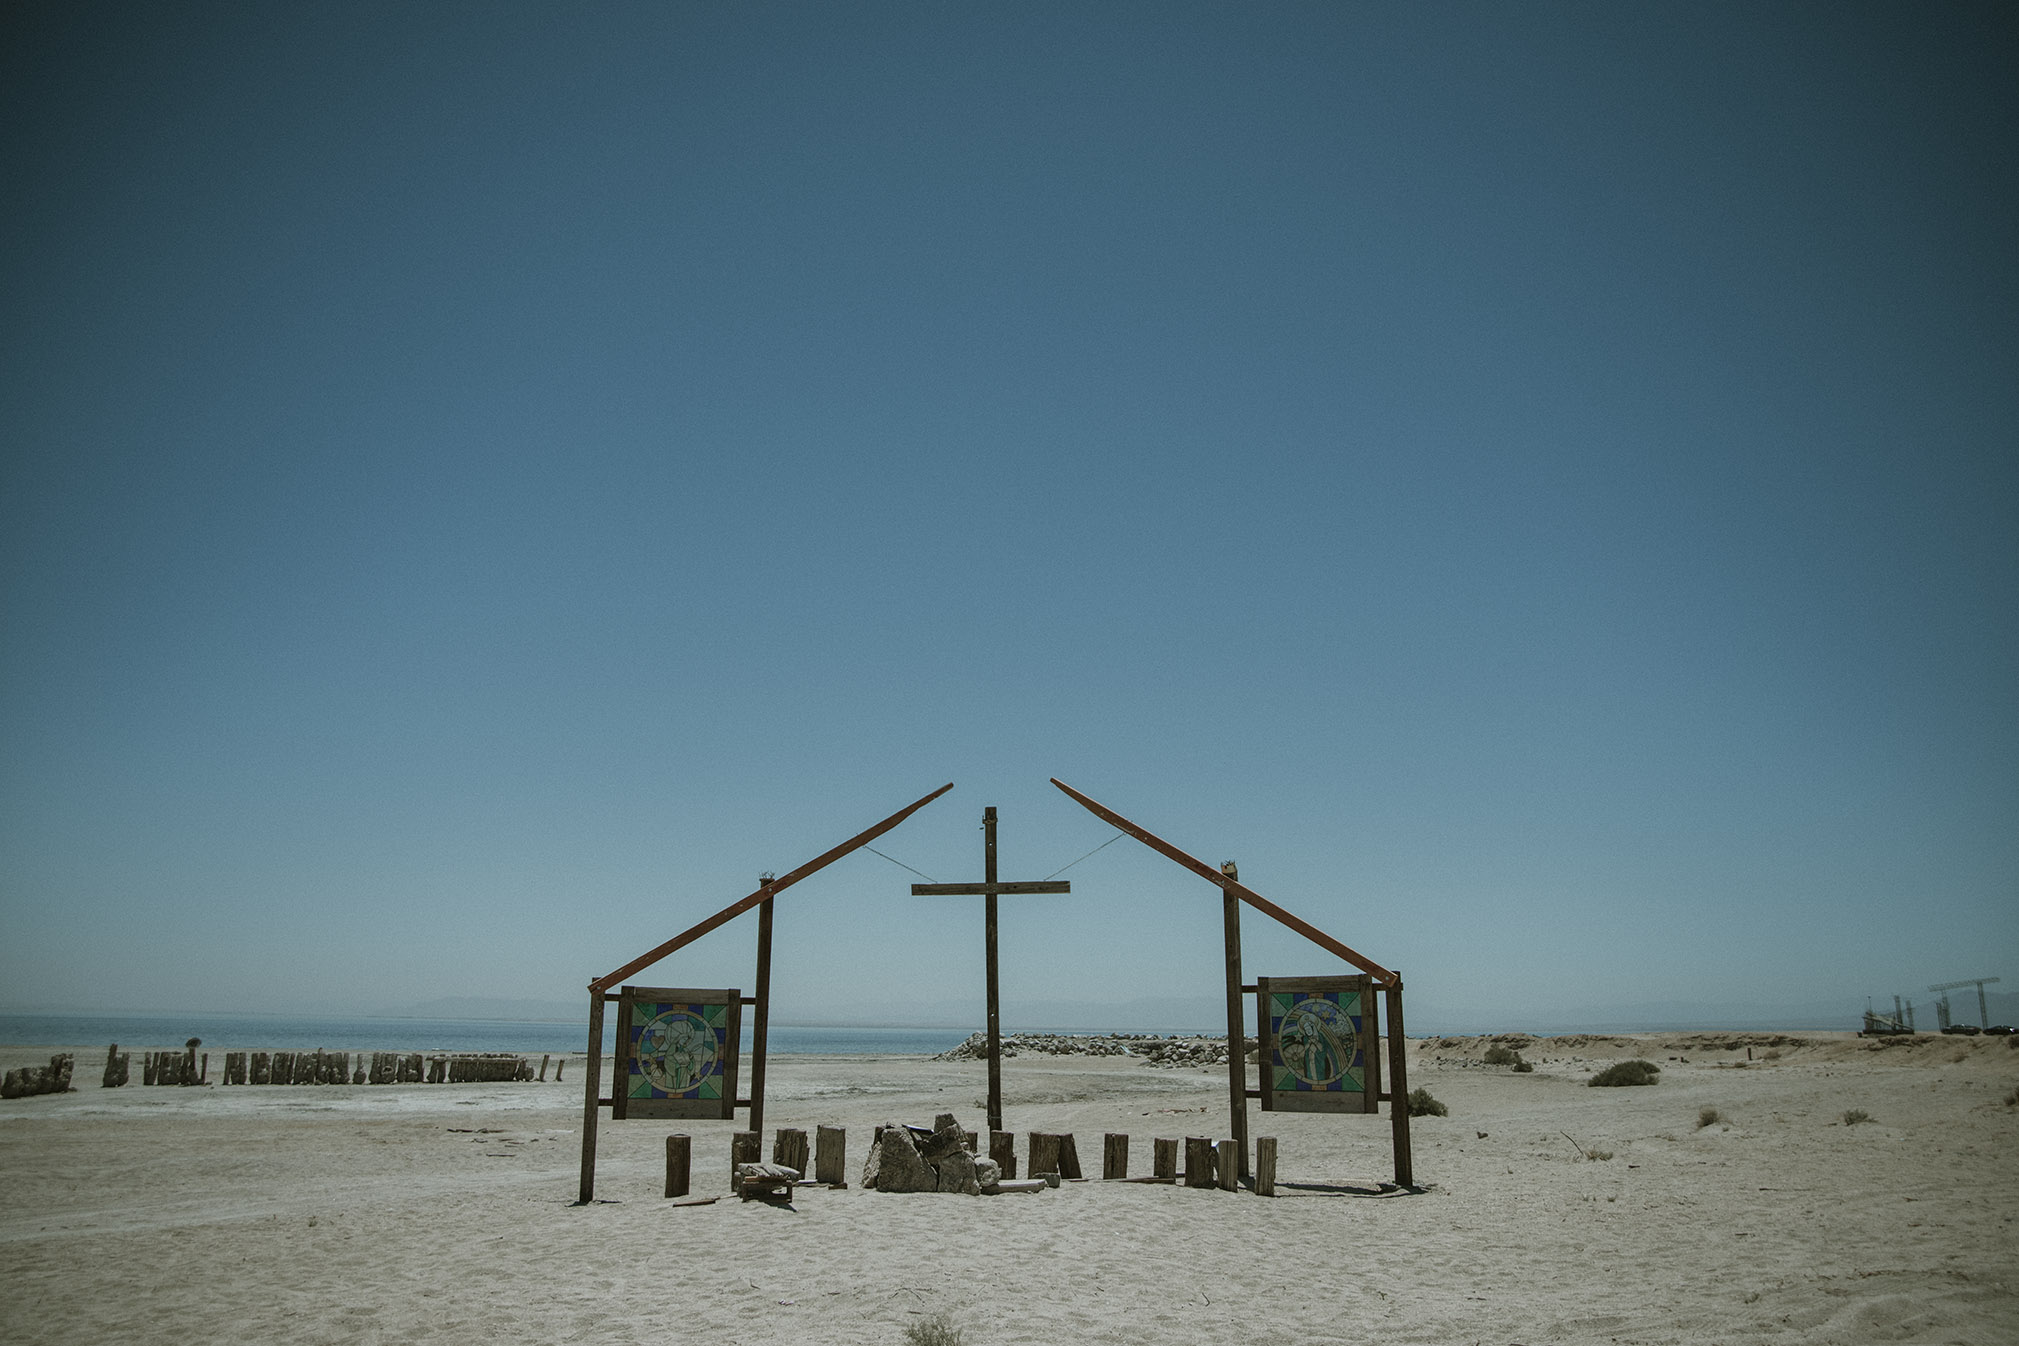 bombay-beach-california.jpg